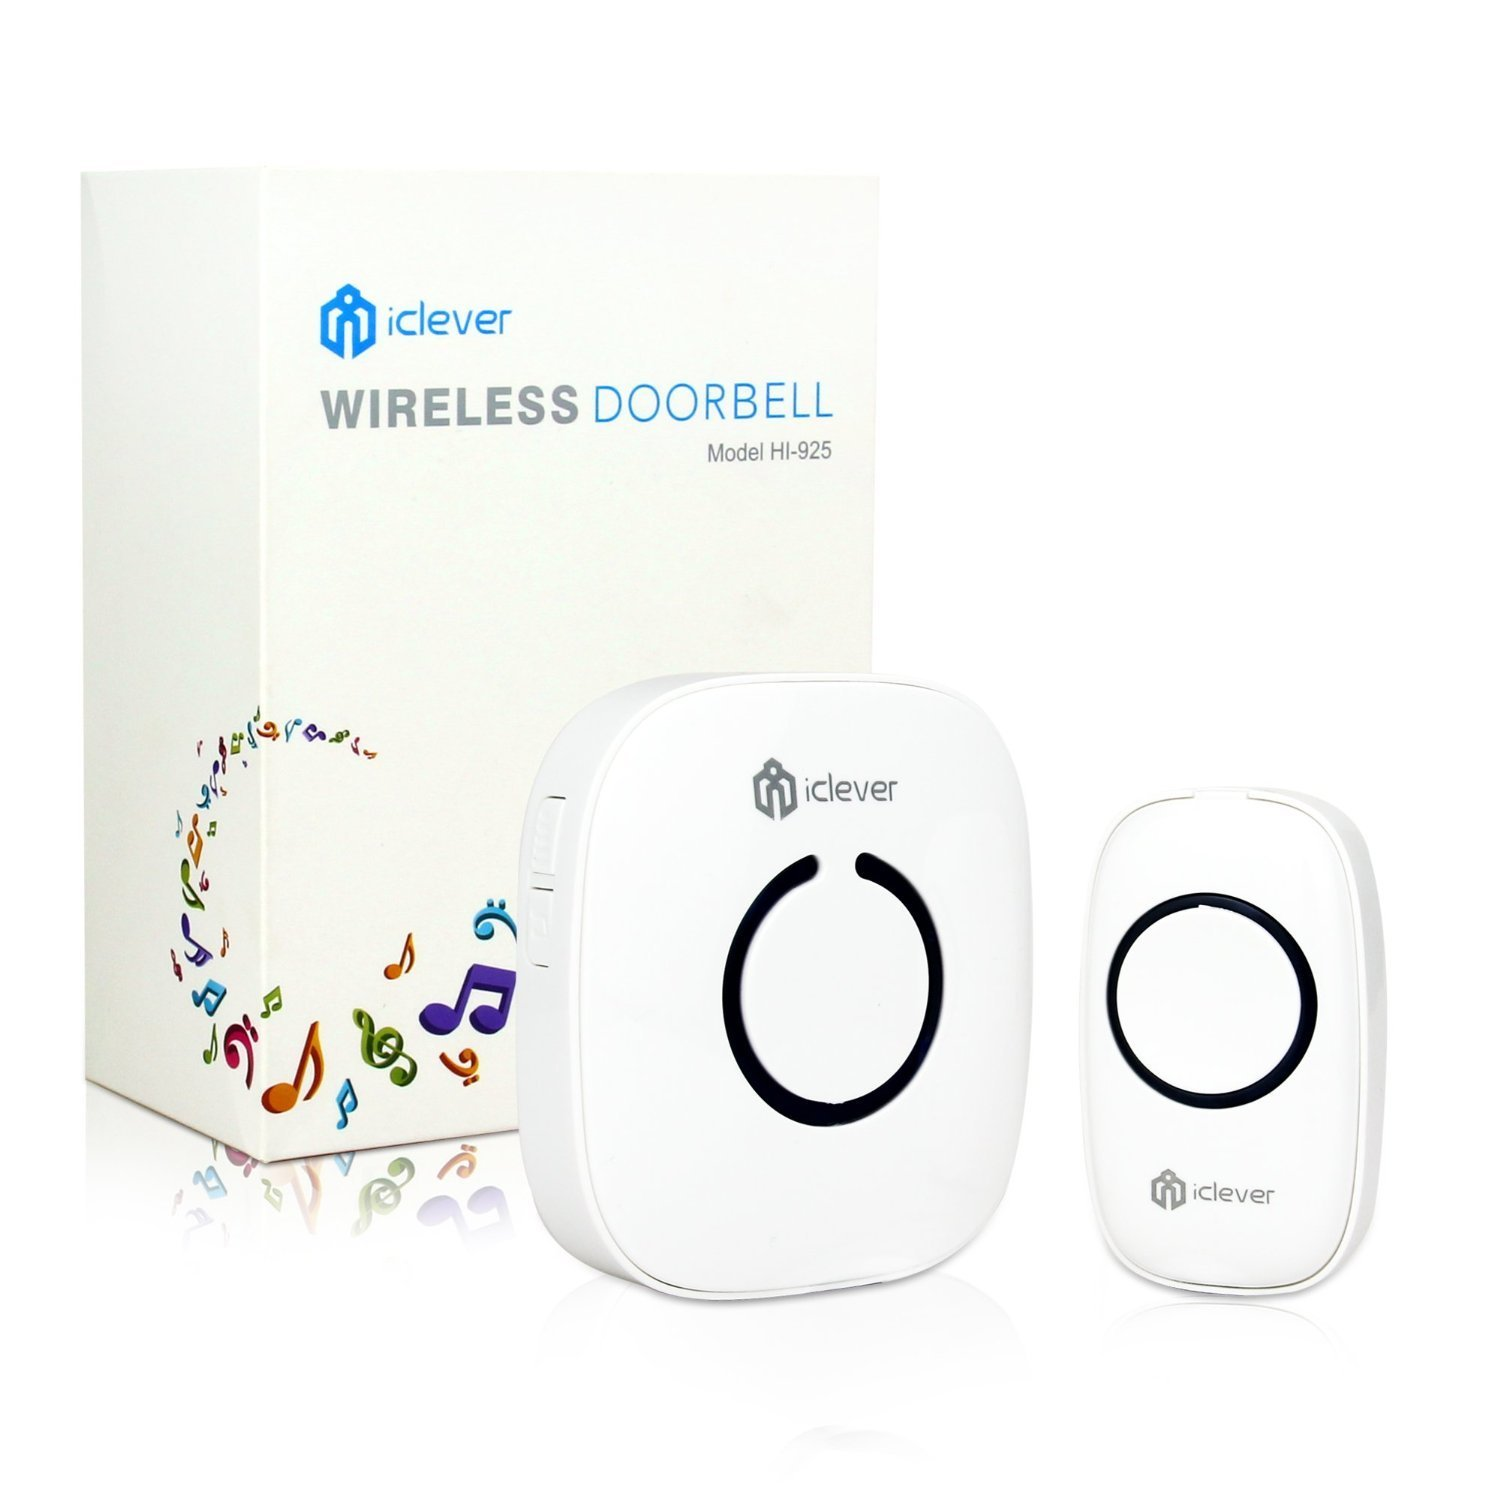 iClever Wireless Door Bell 1.jpg